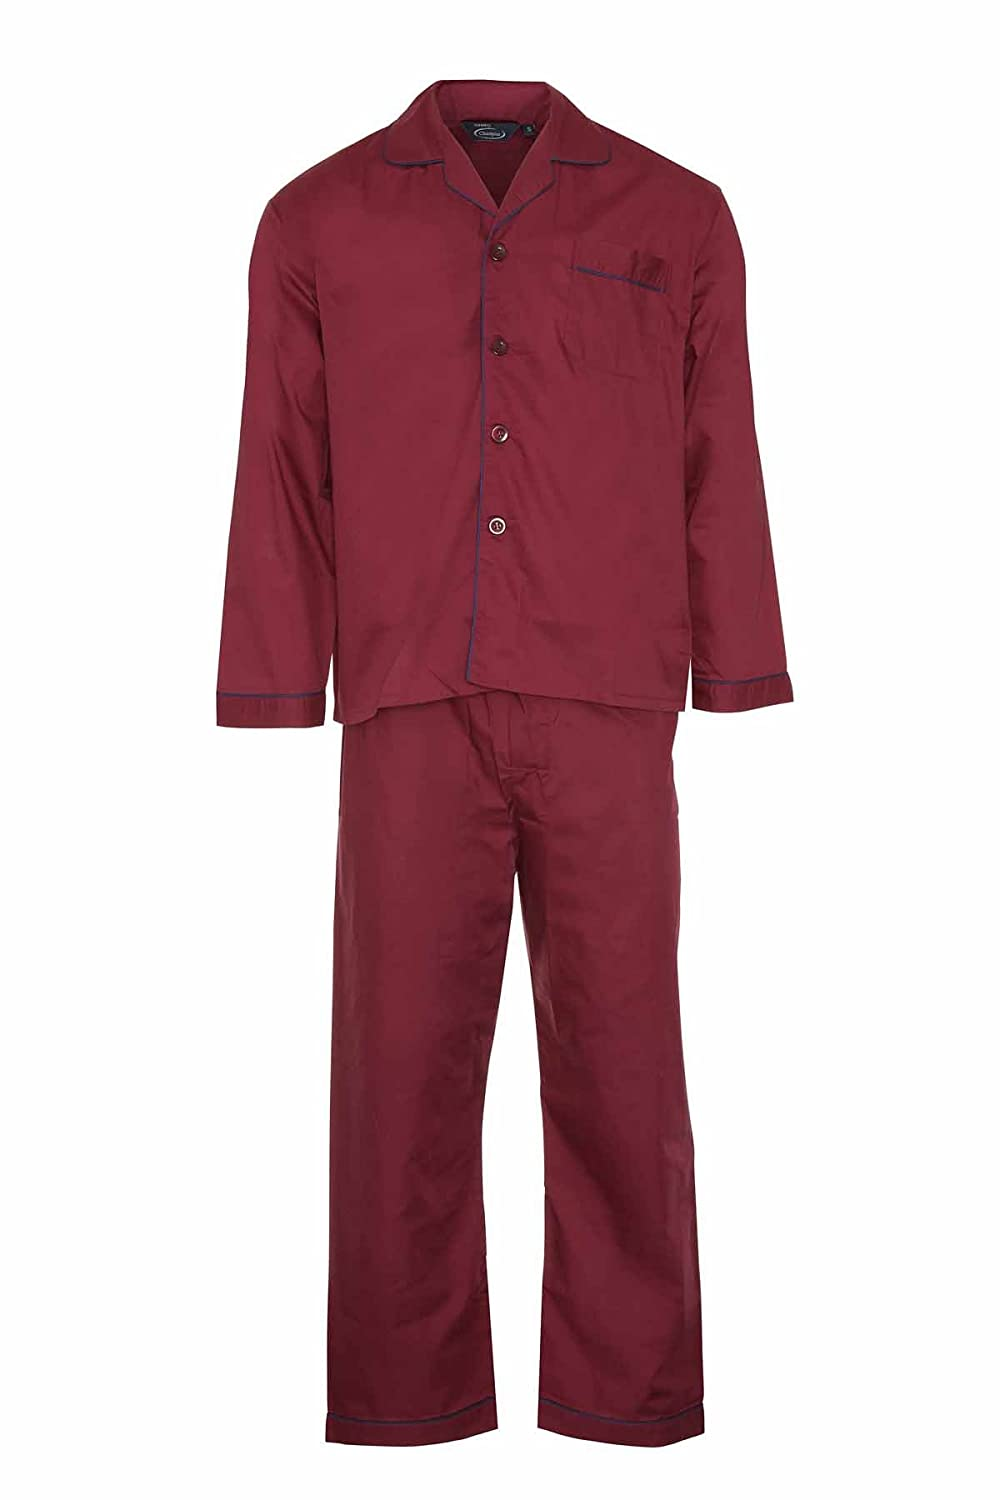 Champion Men's Oxford Plain Design Polycotton Long Pyjama Set 3150